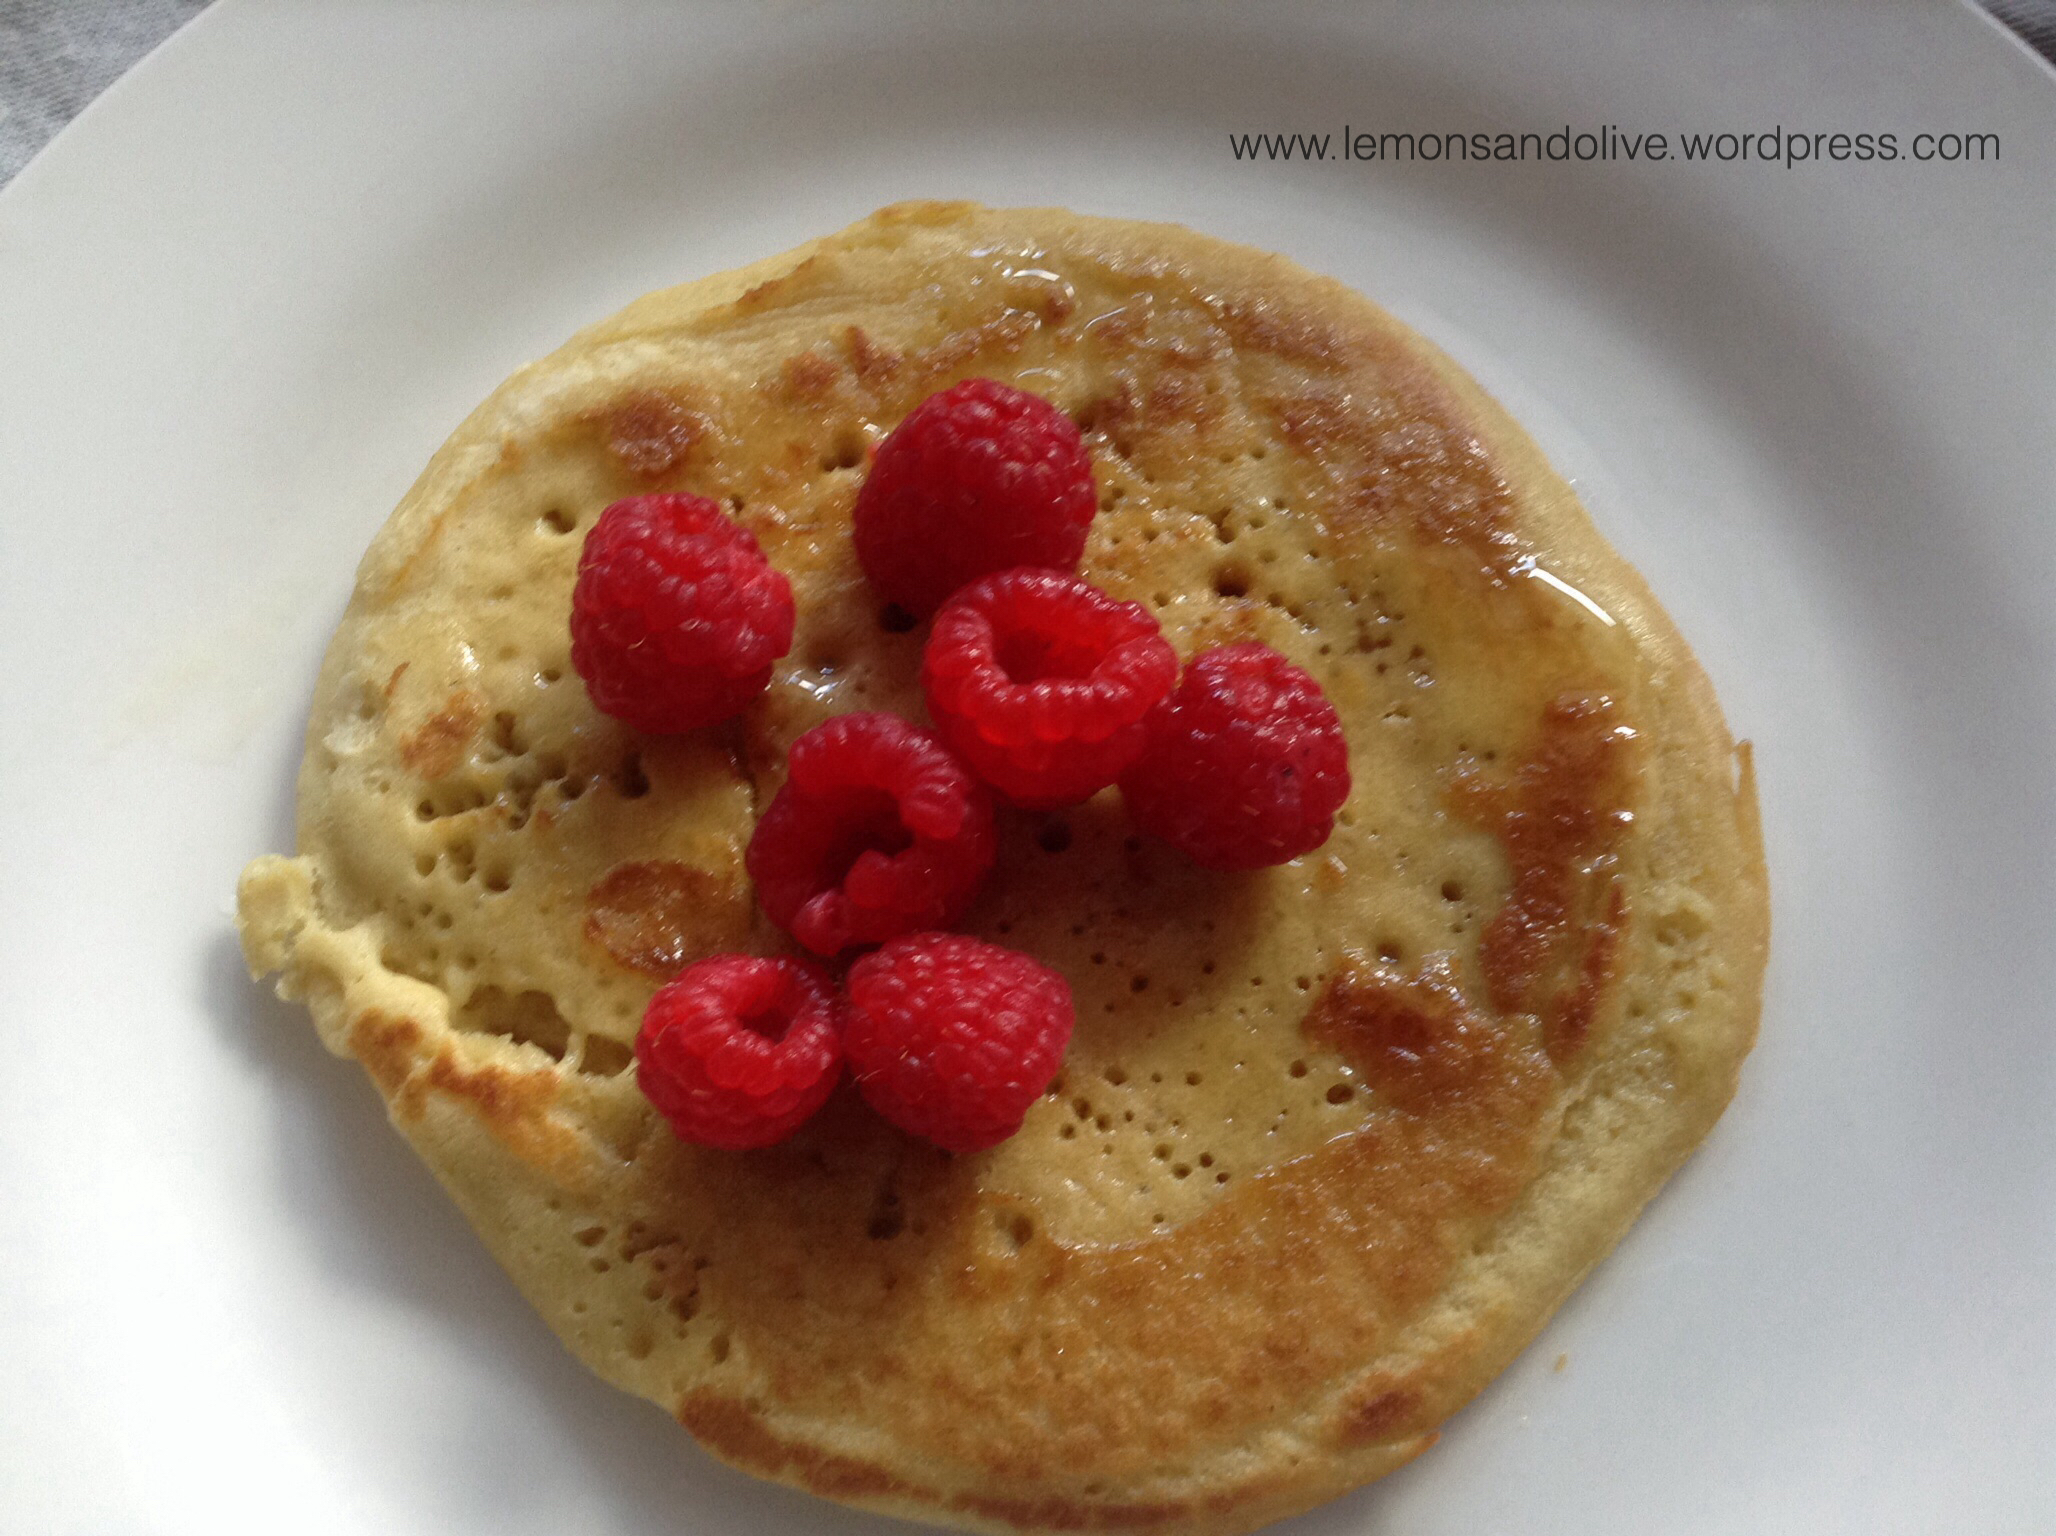 Gluten-free millet pancakes with raspberries